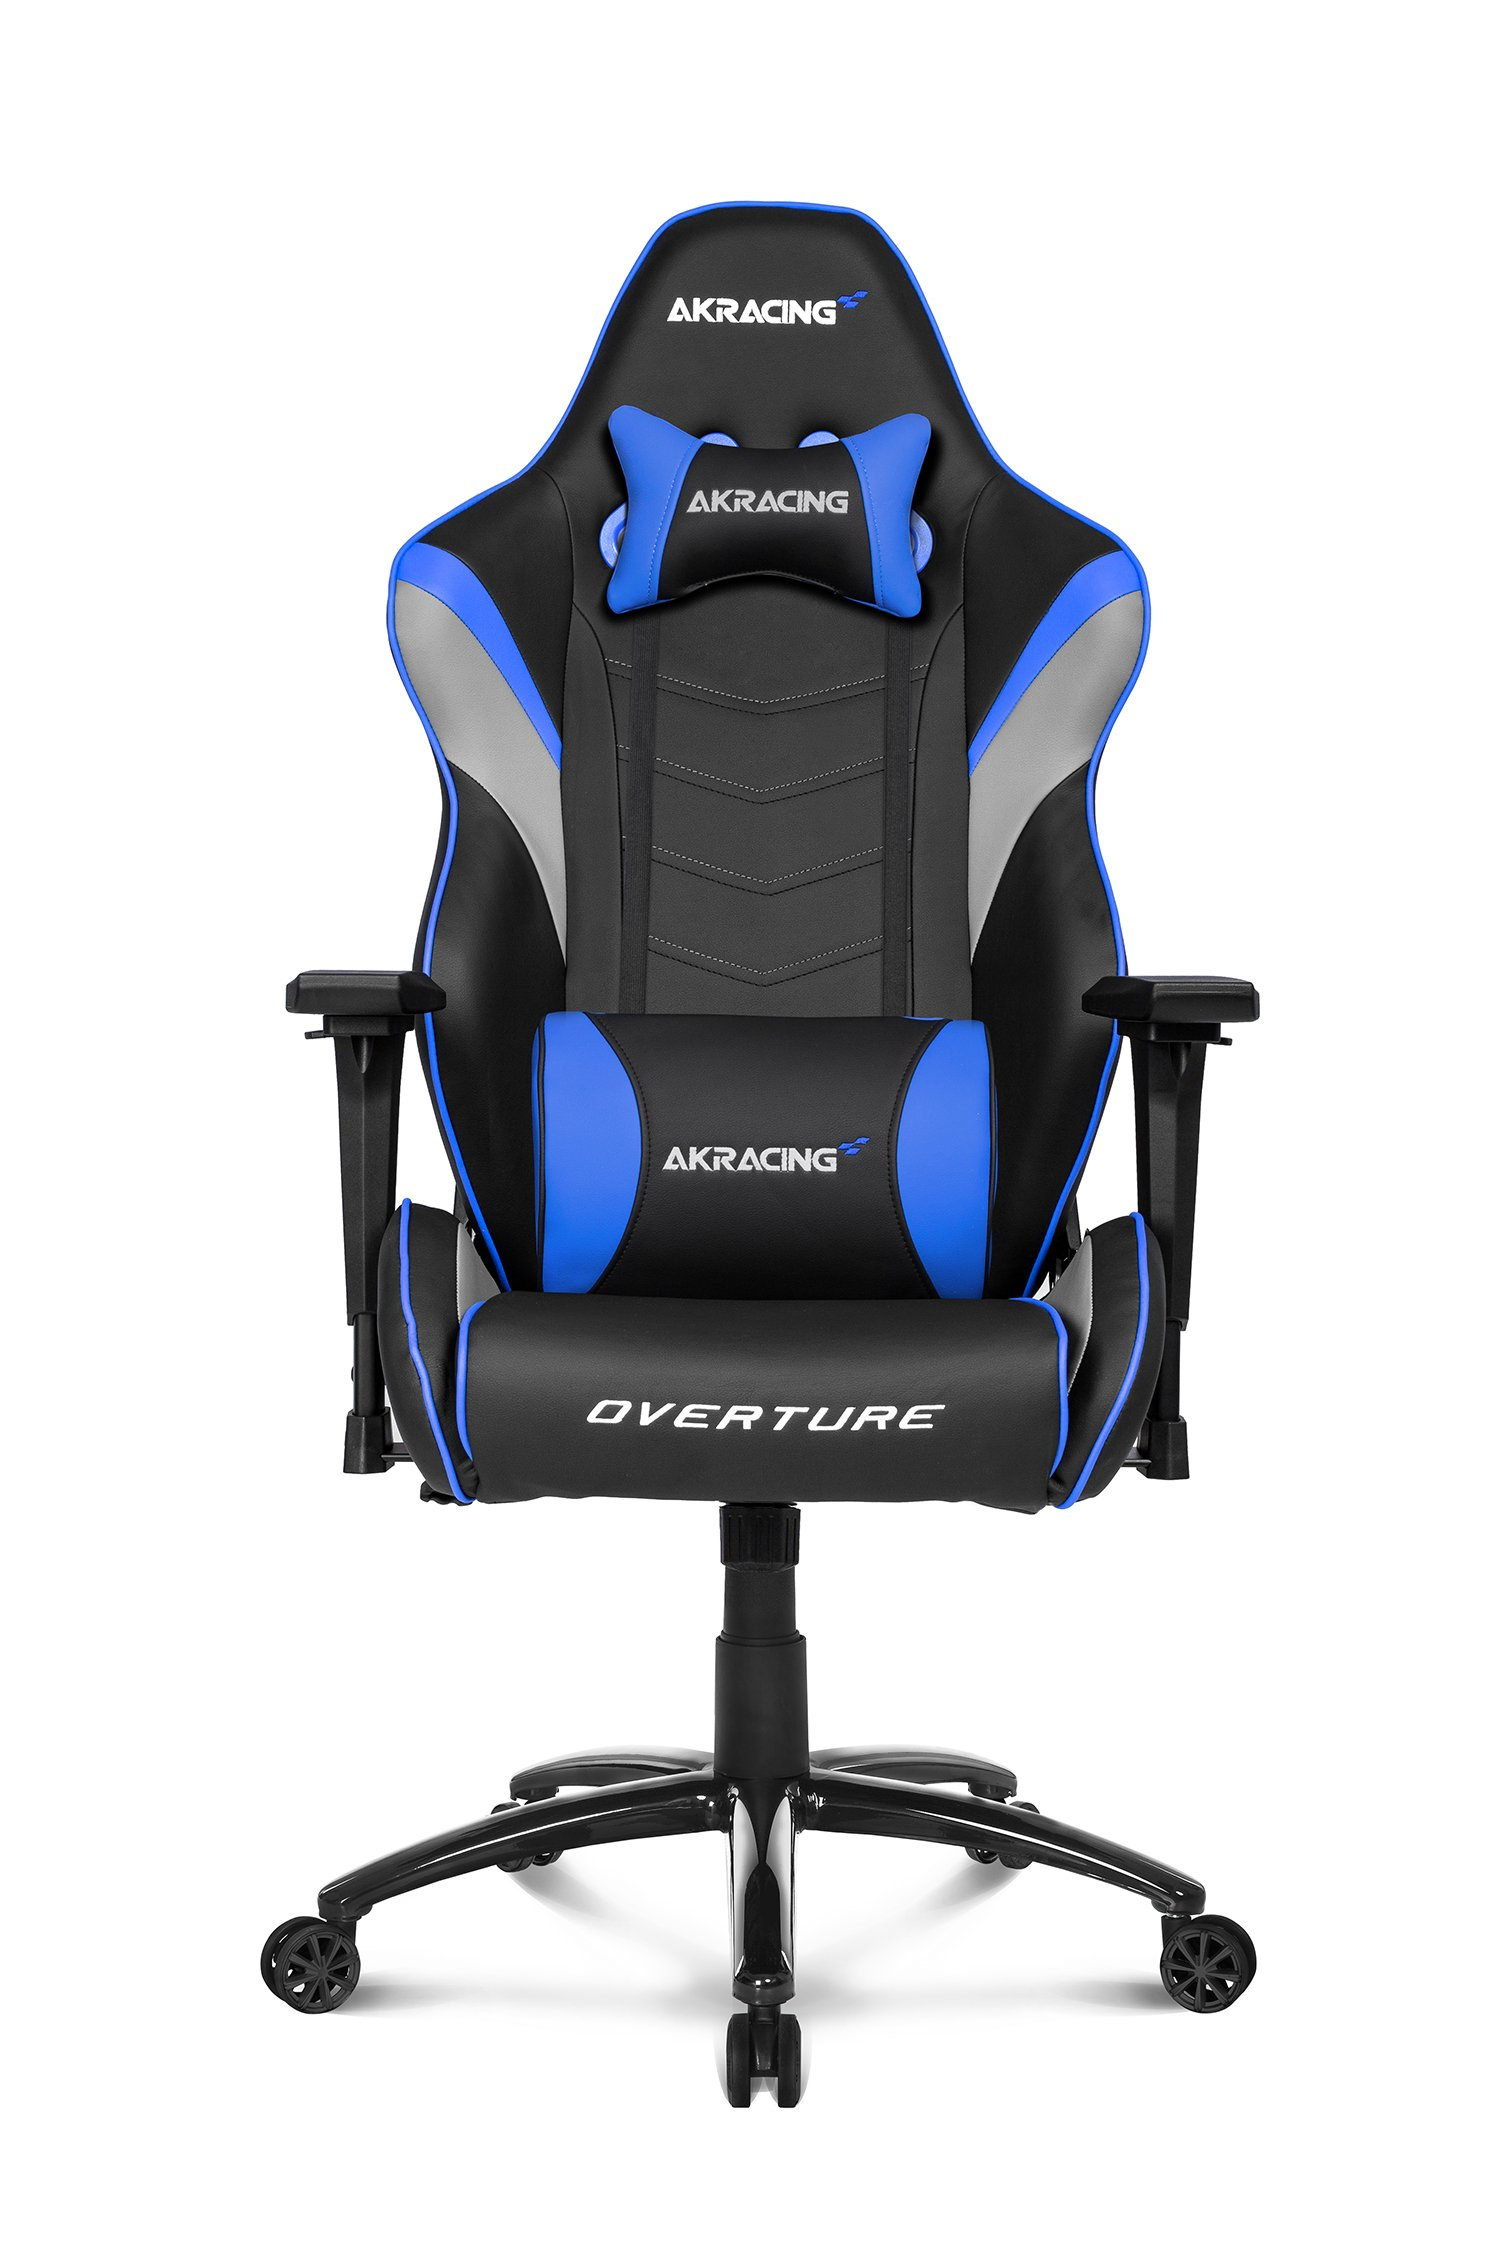 AKRacing Overture Series Super-Premium Gaming Chair with High Backrest, Recliner, Swivel, Tilt, Rocker and Seat Height Adjustment Mechanisms with 5/10 warranty Blue